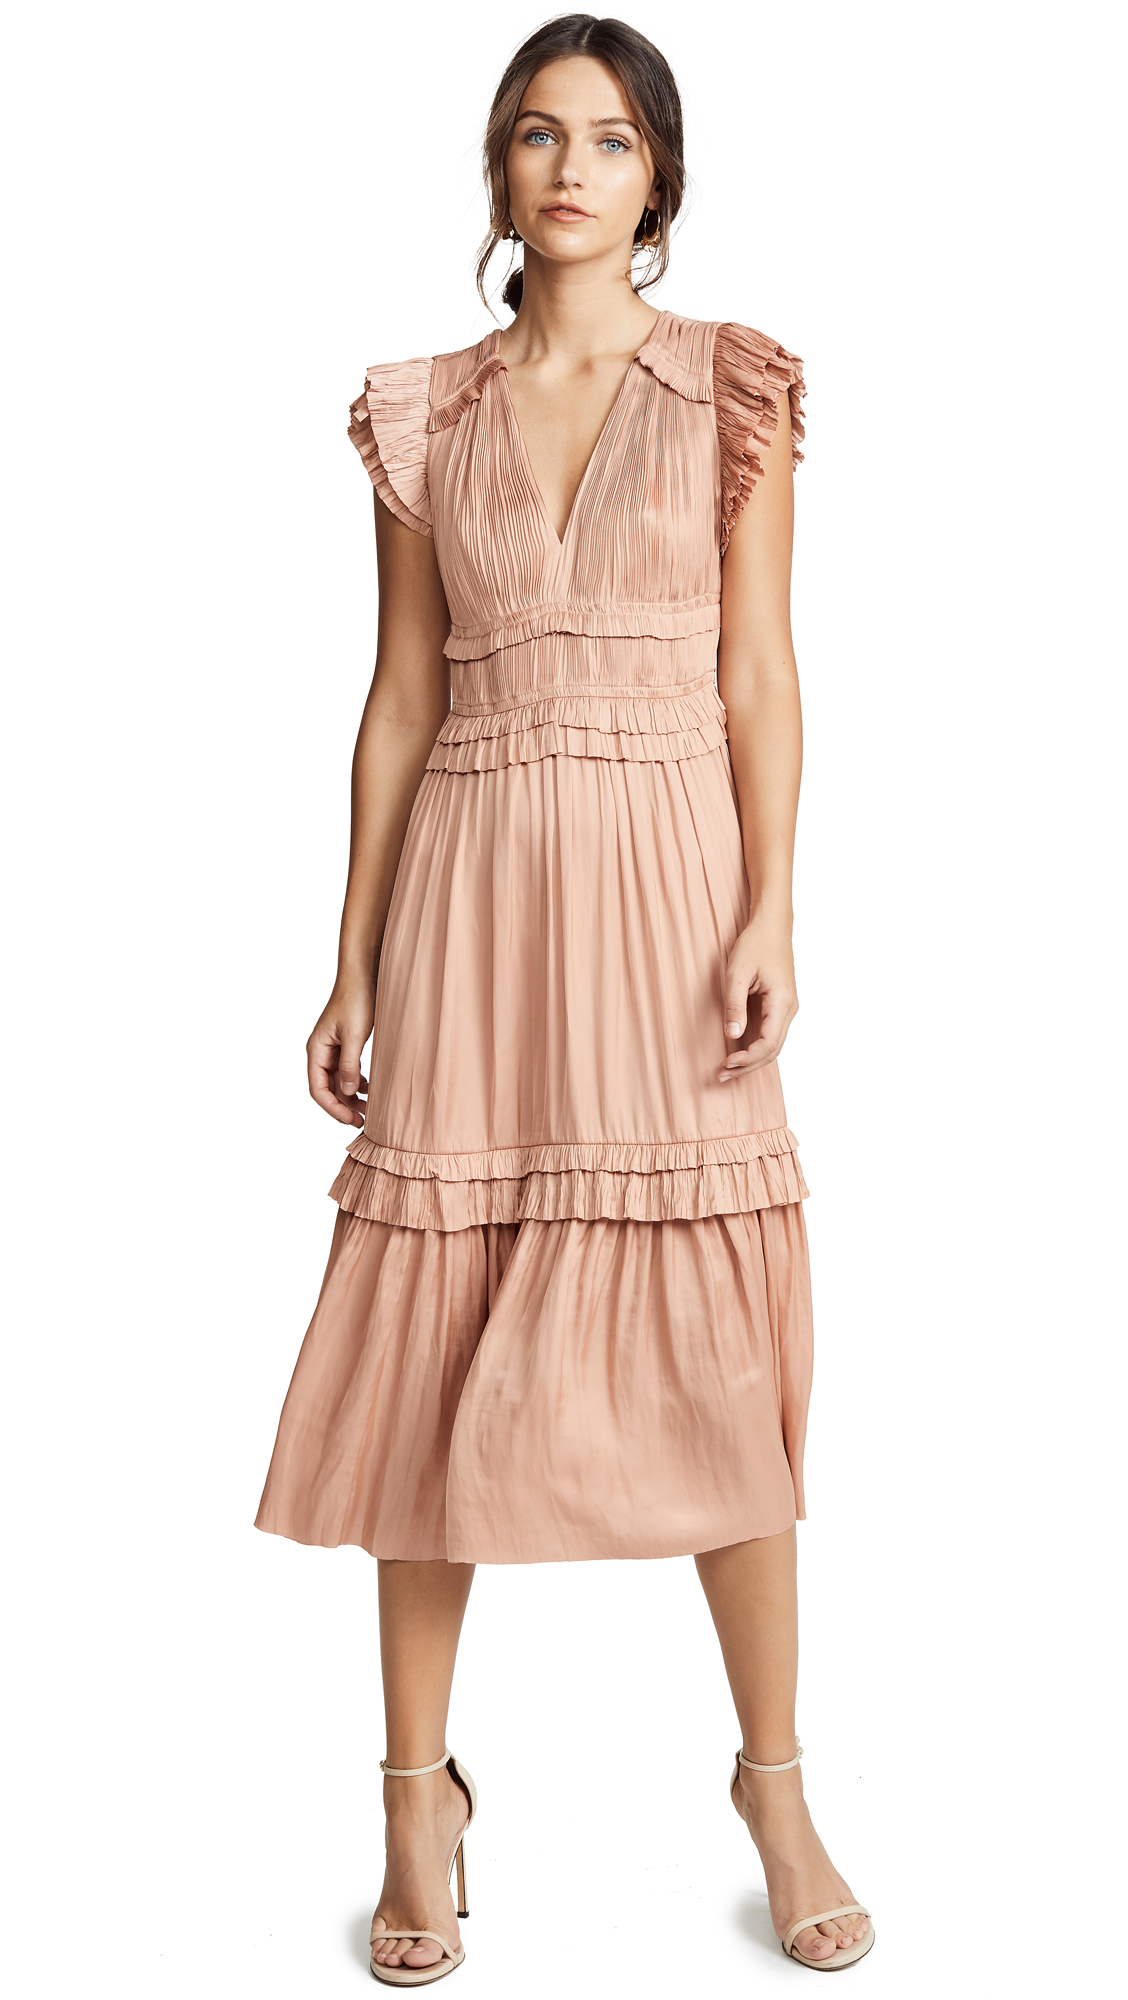 Ulla Johnson Jolee Dress - Cork